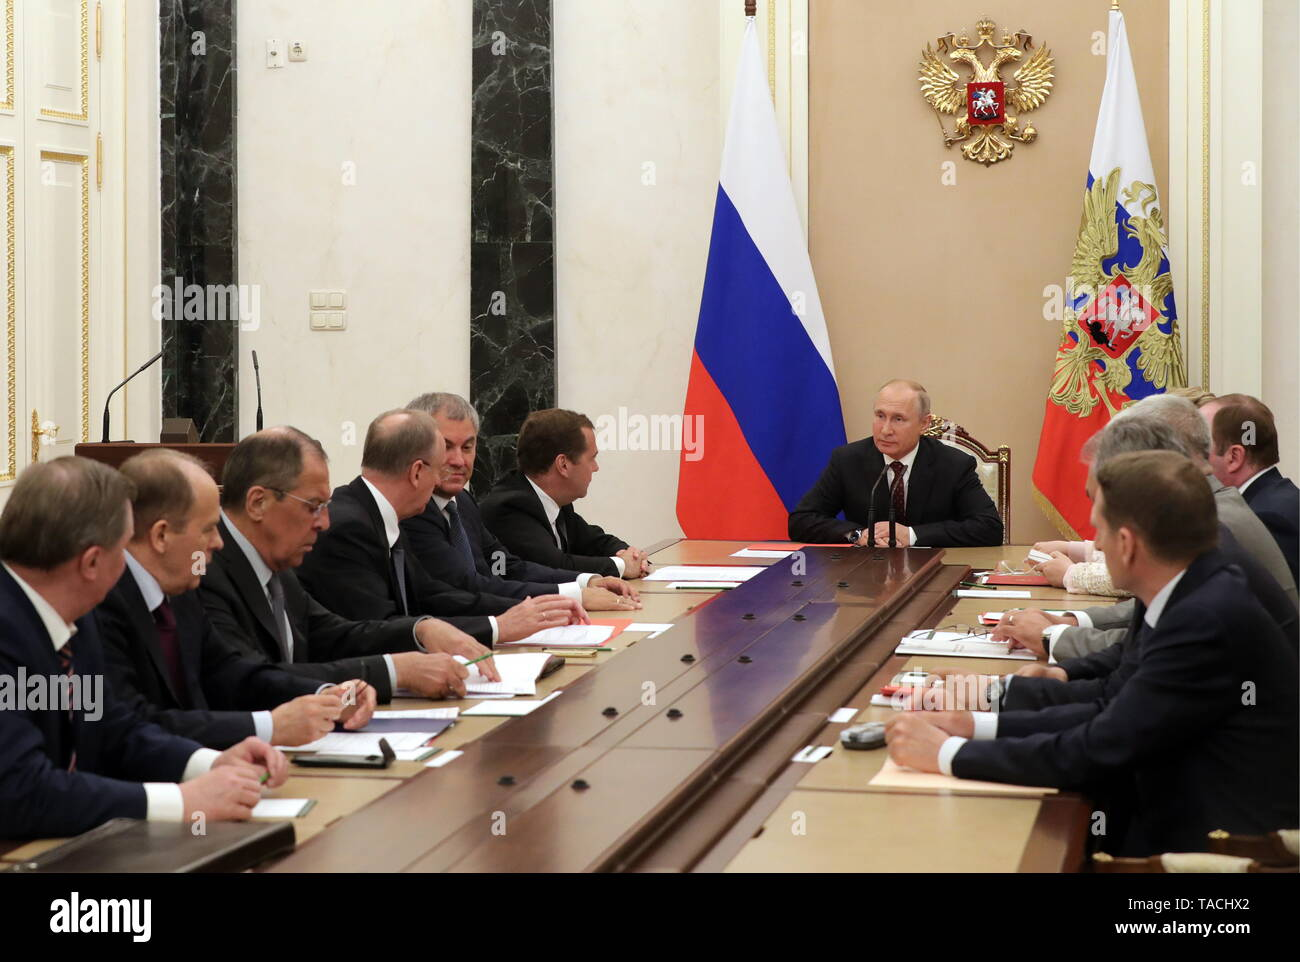 Moscow, Russia. 24th May, 2019. MOSCOW, RUSSIA - MAY 24, 2019: Russia's President Vladimir Putin (C) chairs a Russian Security Council meeting at the Moscow Kremlin. Mikhail Klimentyev/Russian Presidential Press and Information Office/TASS Credit: ITAR-TASS News Agency/Alamy Live News - Stock Image